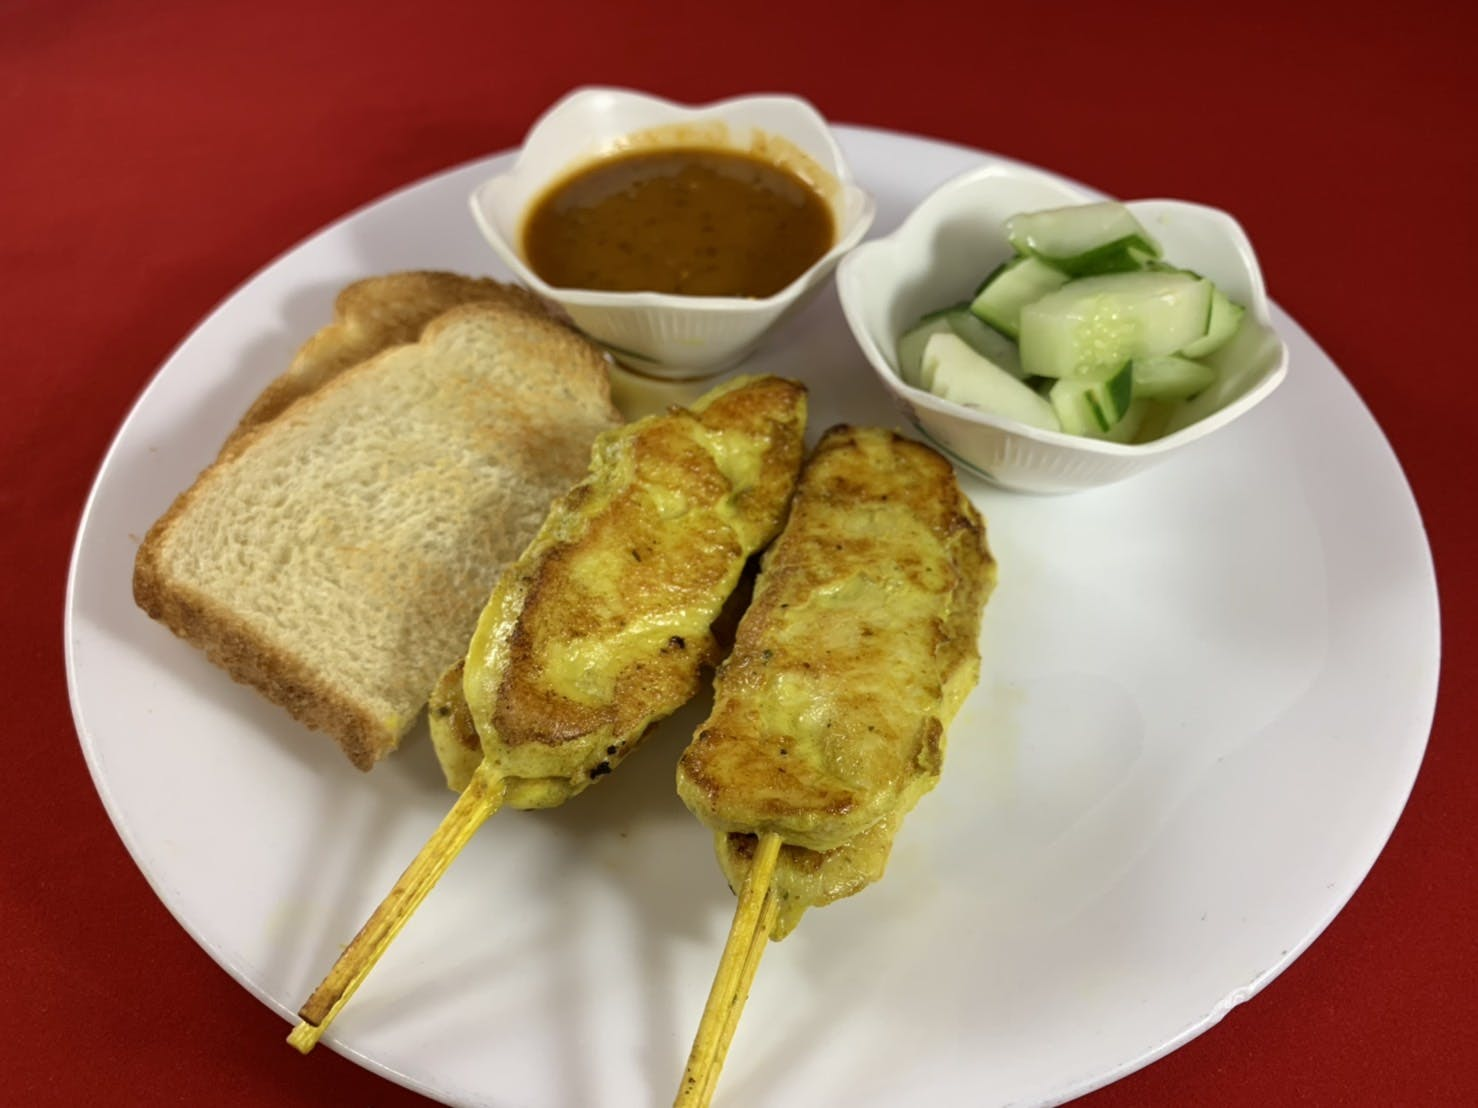 6. Chicken Satay (Dinner) from Sa-Bai Thong - University Ave in Madison, WI